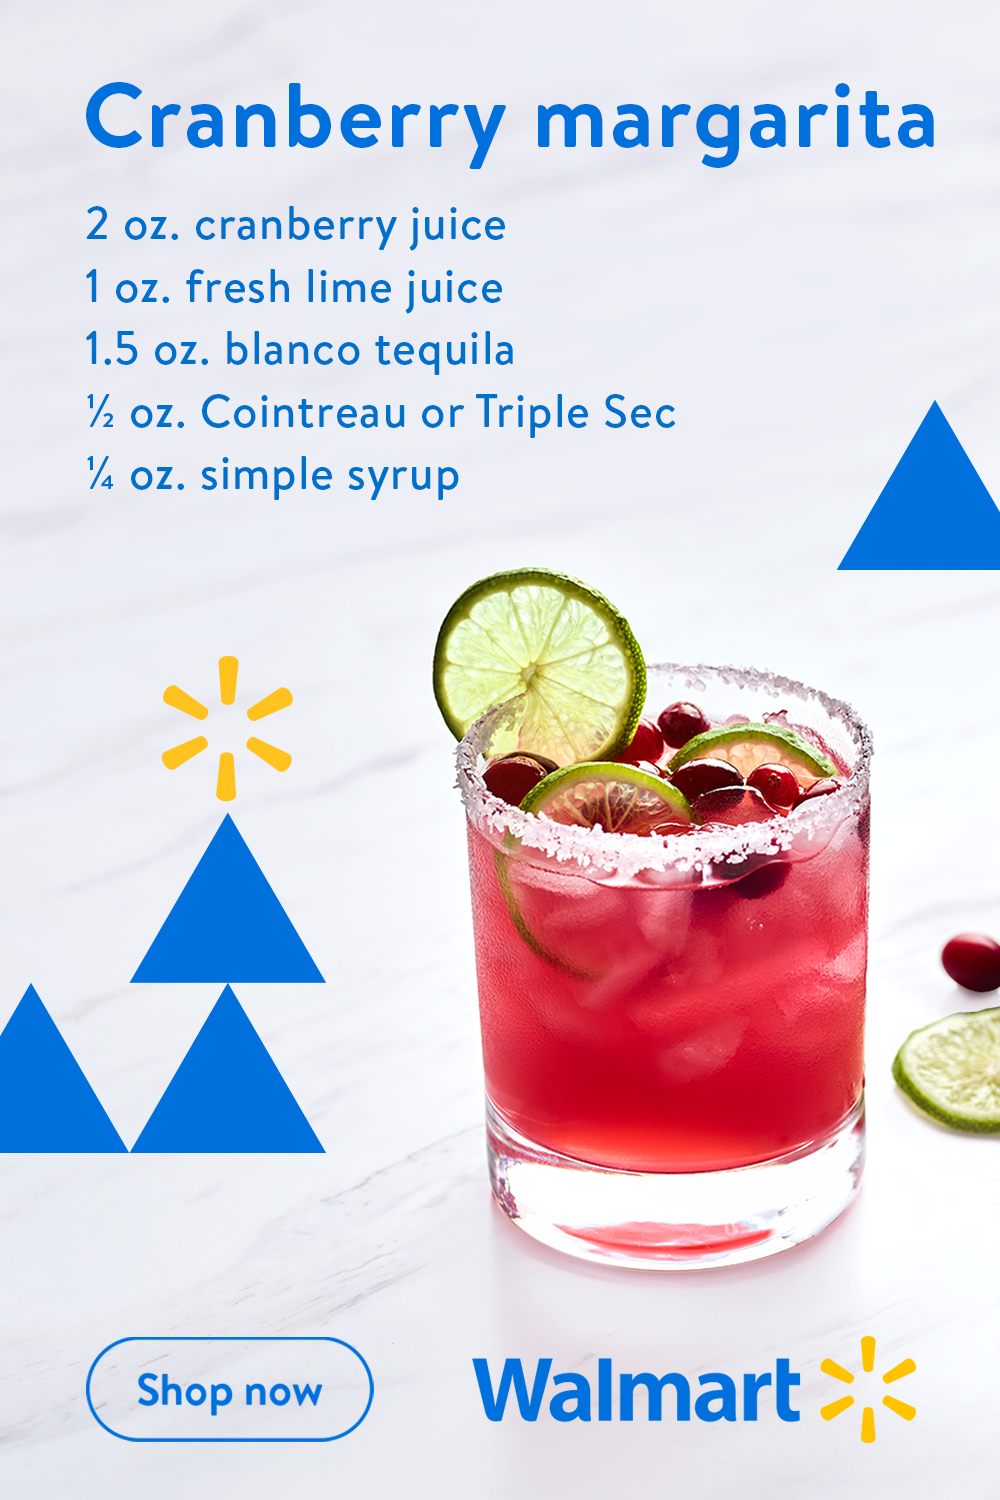 This refreshing cranberry margarita recipe from Walmart is equal parts easy and delicious. So grab a blanket and cozy up cranberry style this season.